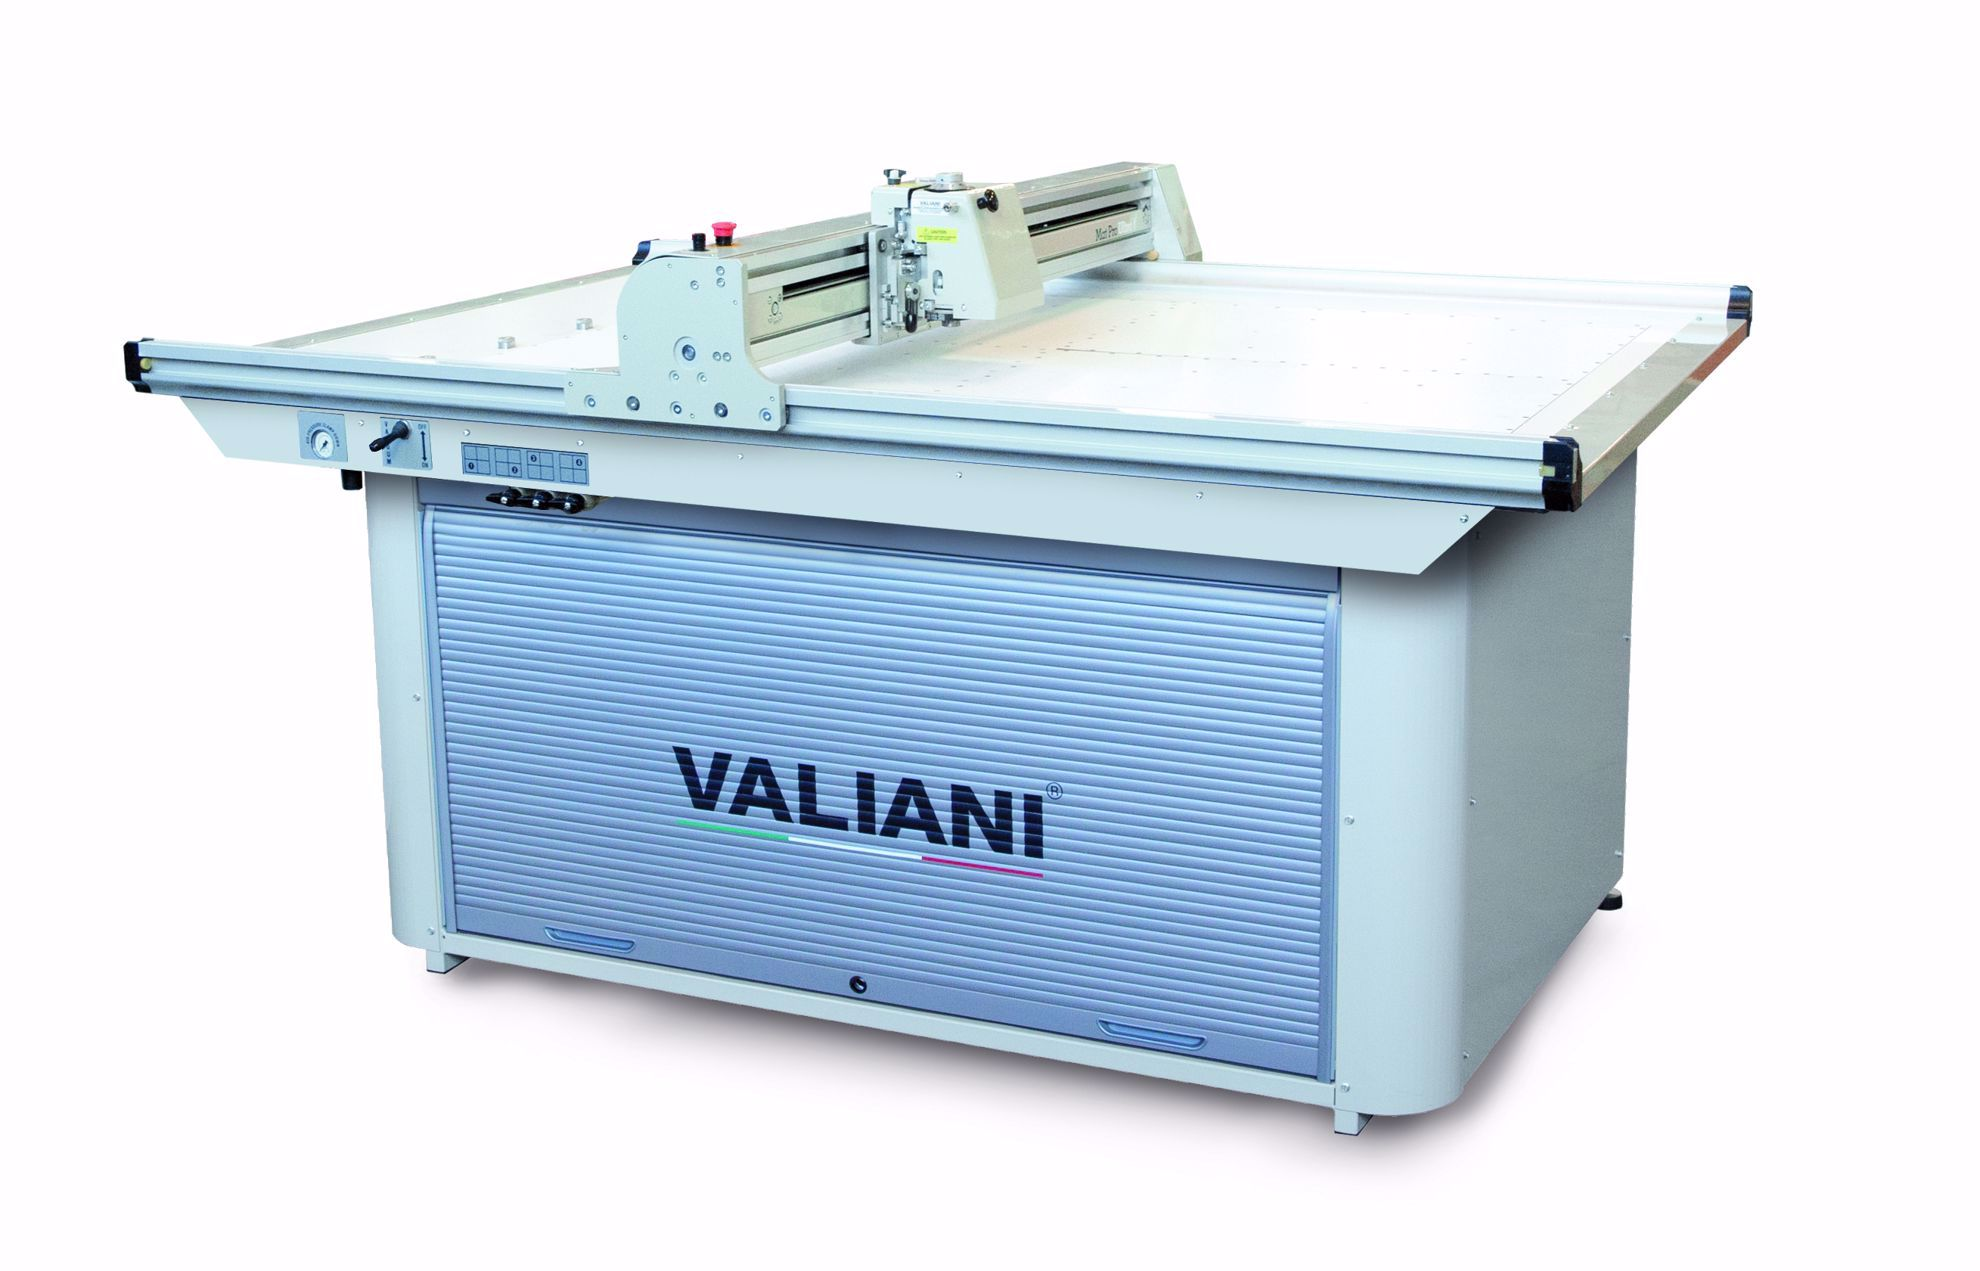 Picture of Valiani Mat Pro Ultra V120 & Mat Pro Ultra V150 flat bed cutting table